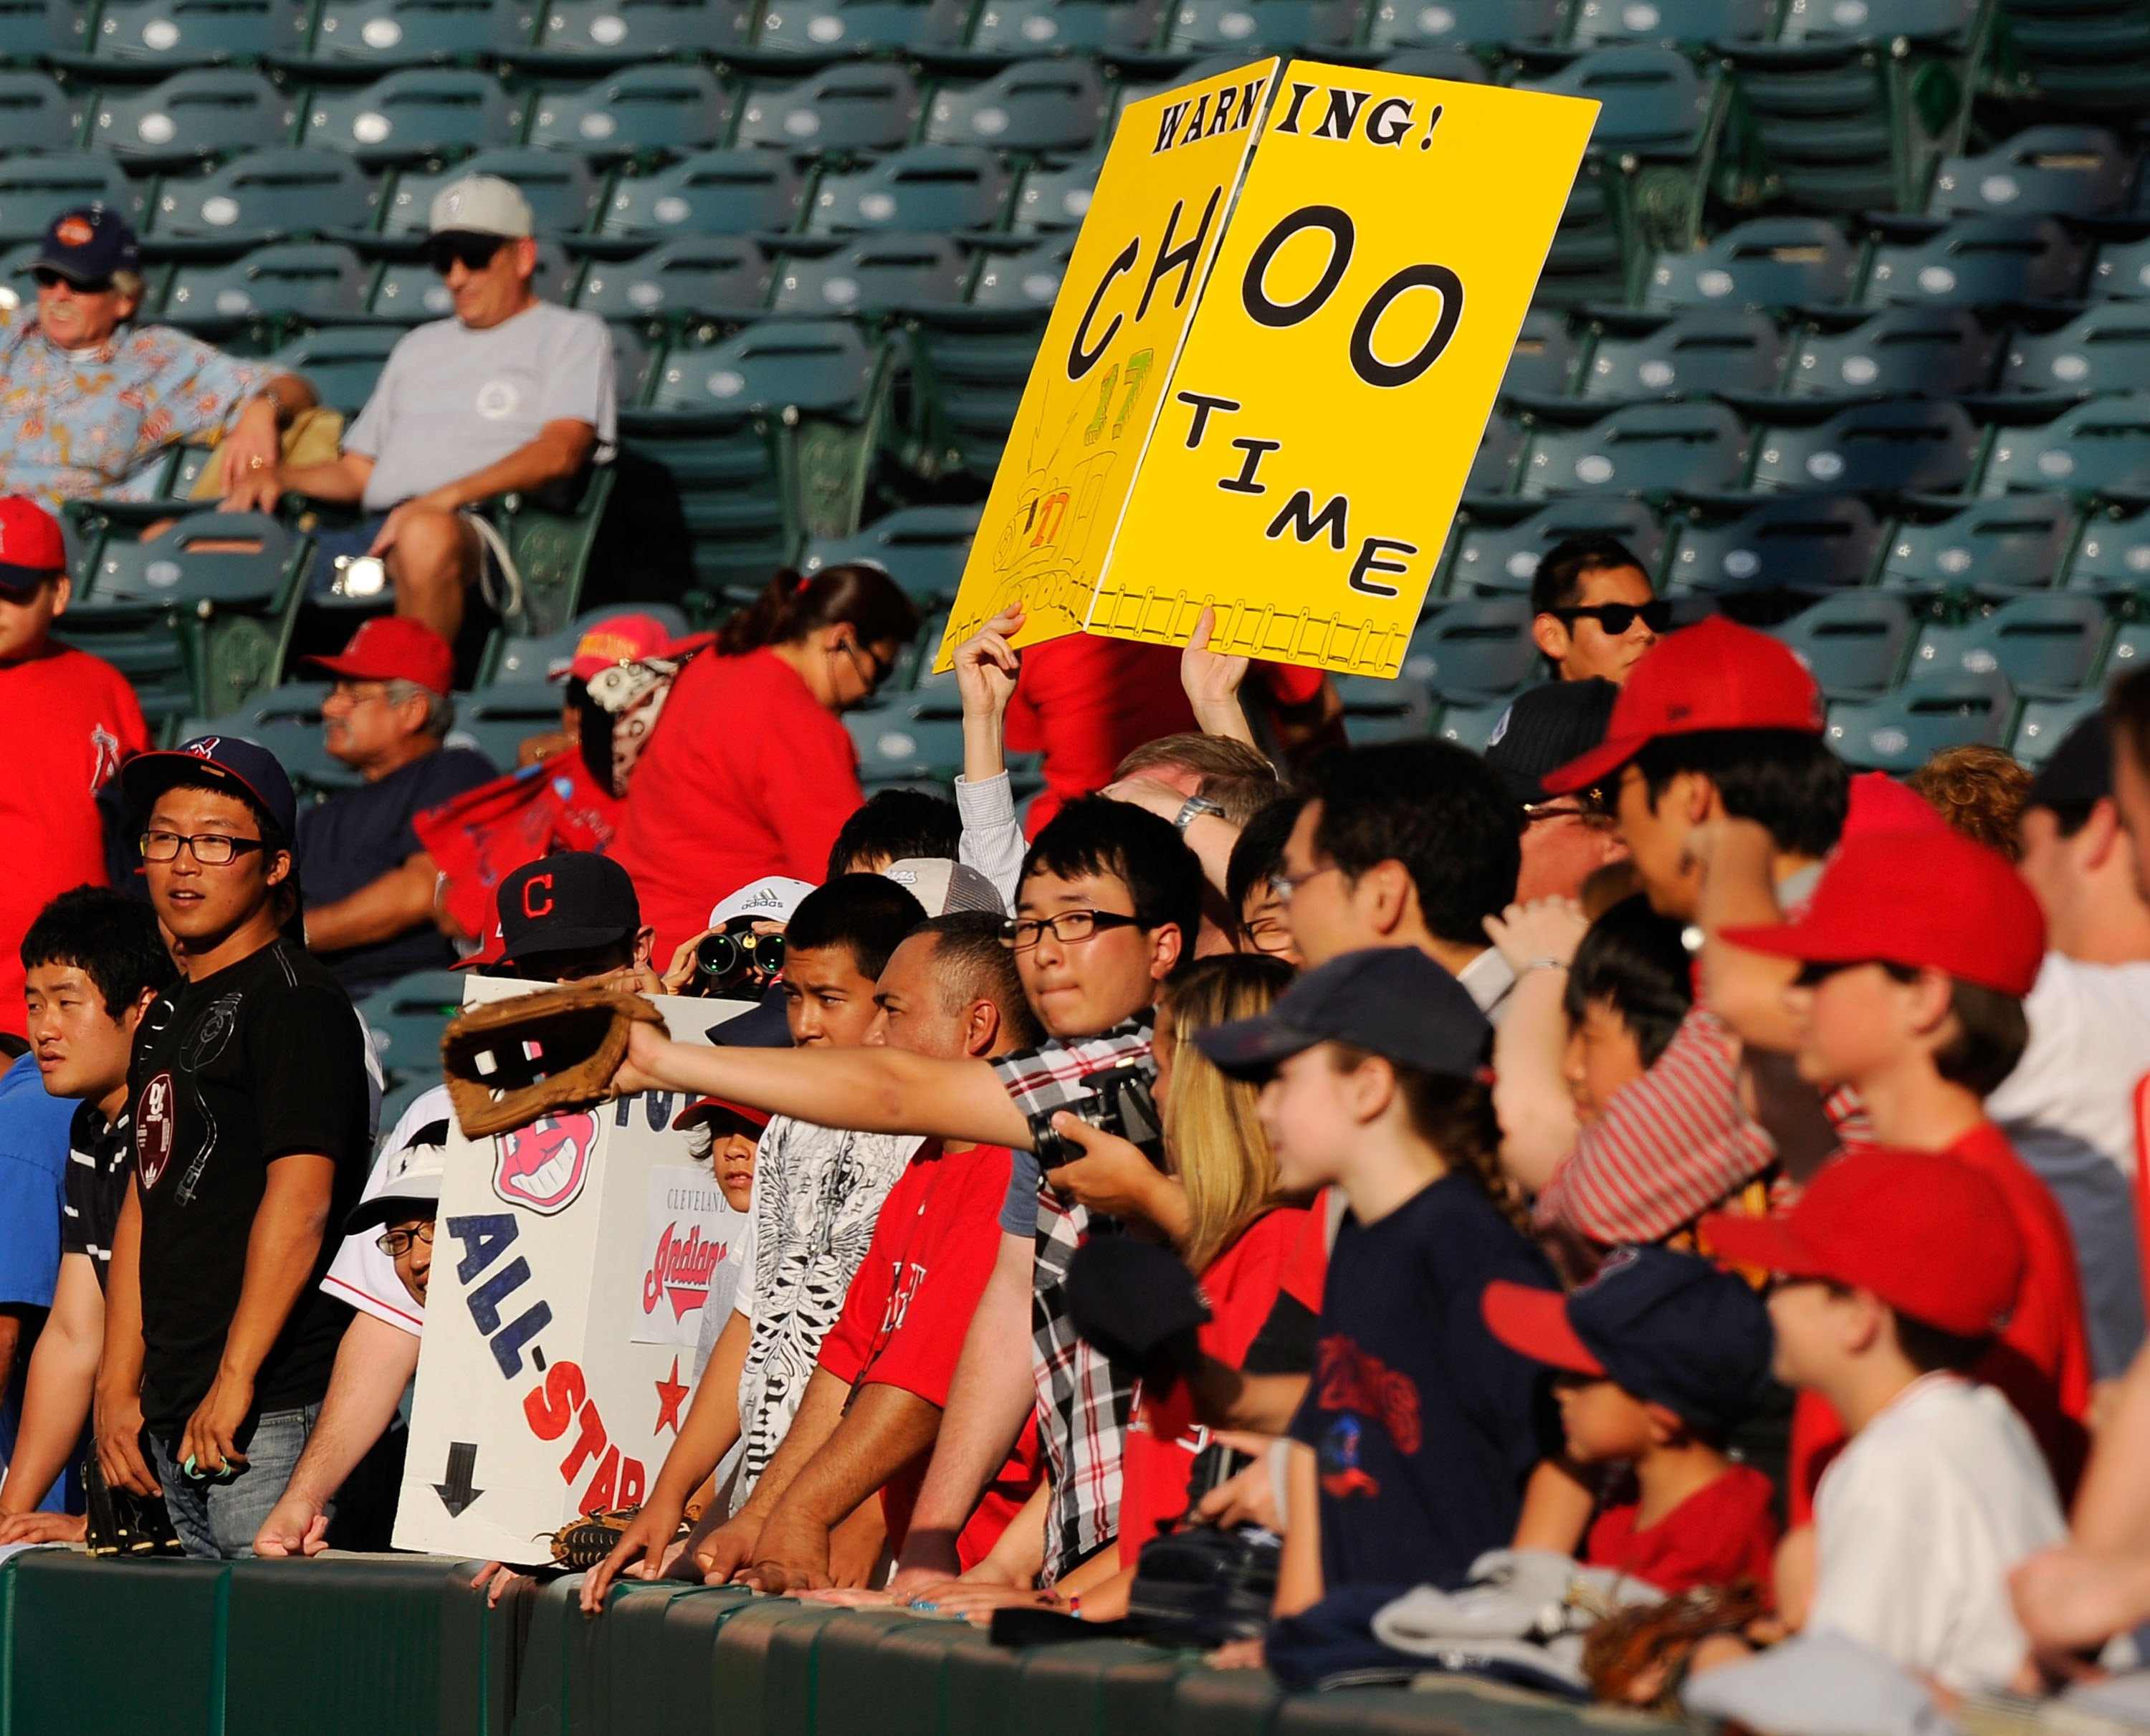 ANAHEIM, CA - APRIL 26:  Fans in support of Shin-Soo Choo #17 Korean right fielder of the Cleveland Indians hold up signs during batting practice before the start of the baseball game against Los Angeles Angels of Anaheim on April 26, 2010 at Angel Stadiu